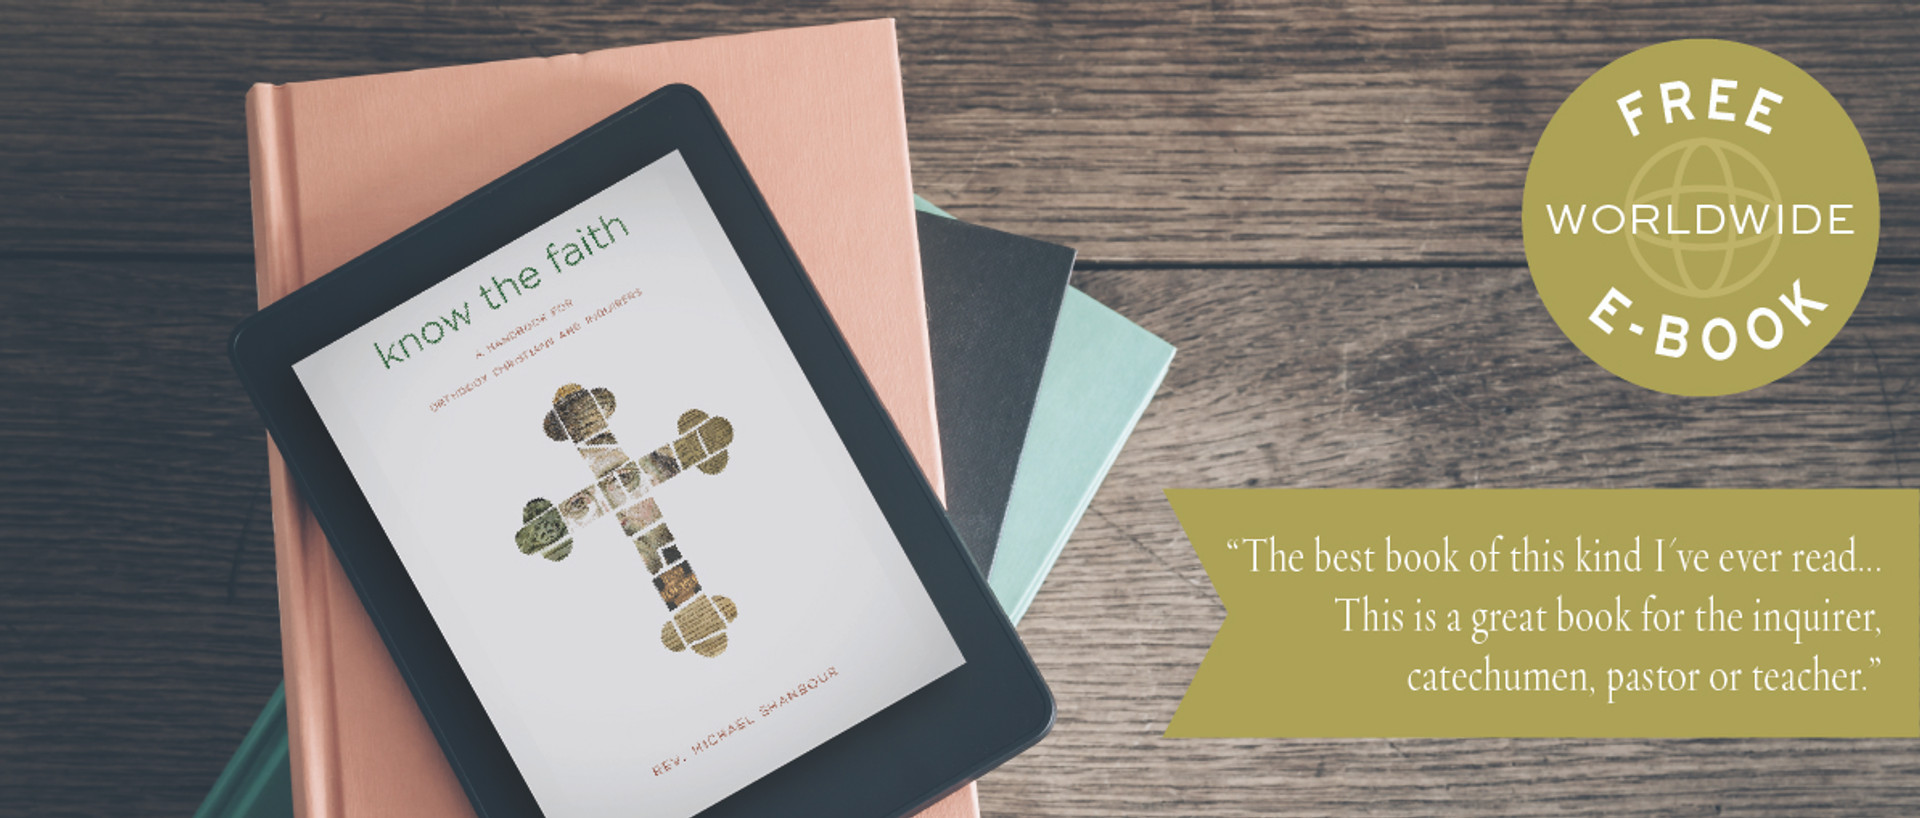 Know the Faith FREE eBook OFFER!